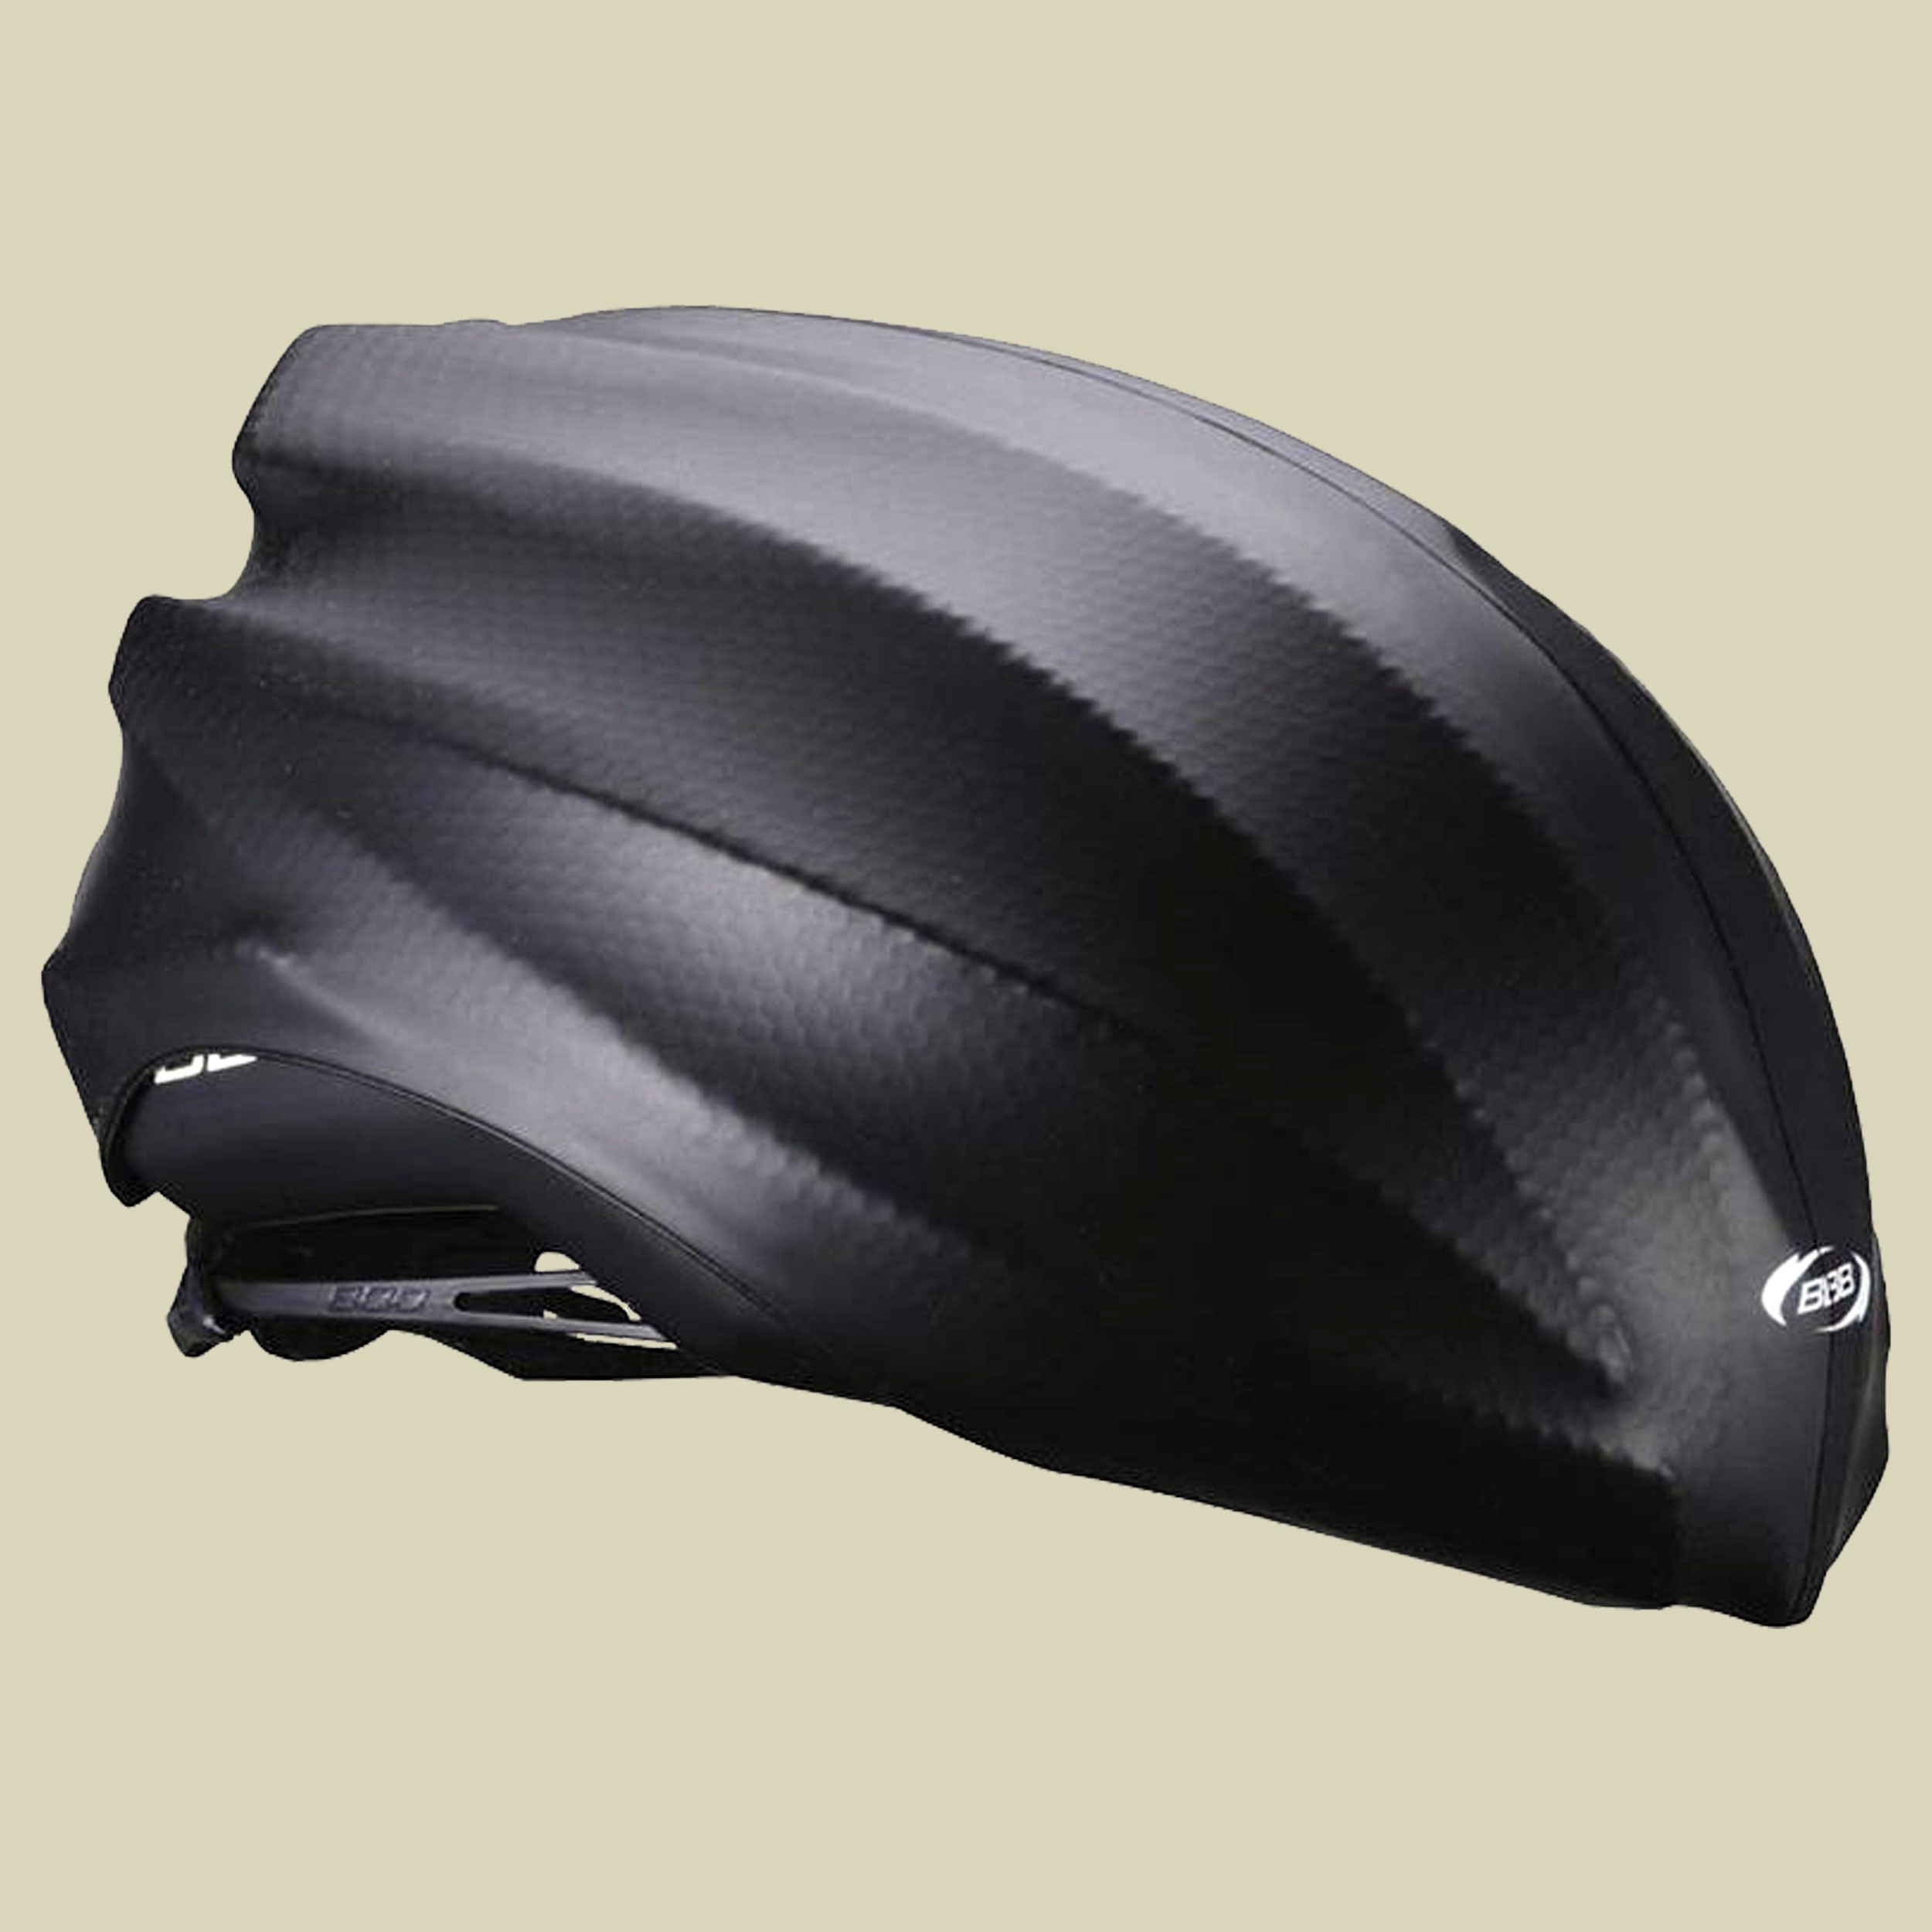 sport_import_BBB_Helmcover_Aerocap_BHE_76_fallback